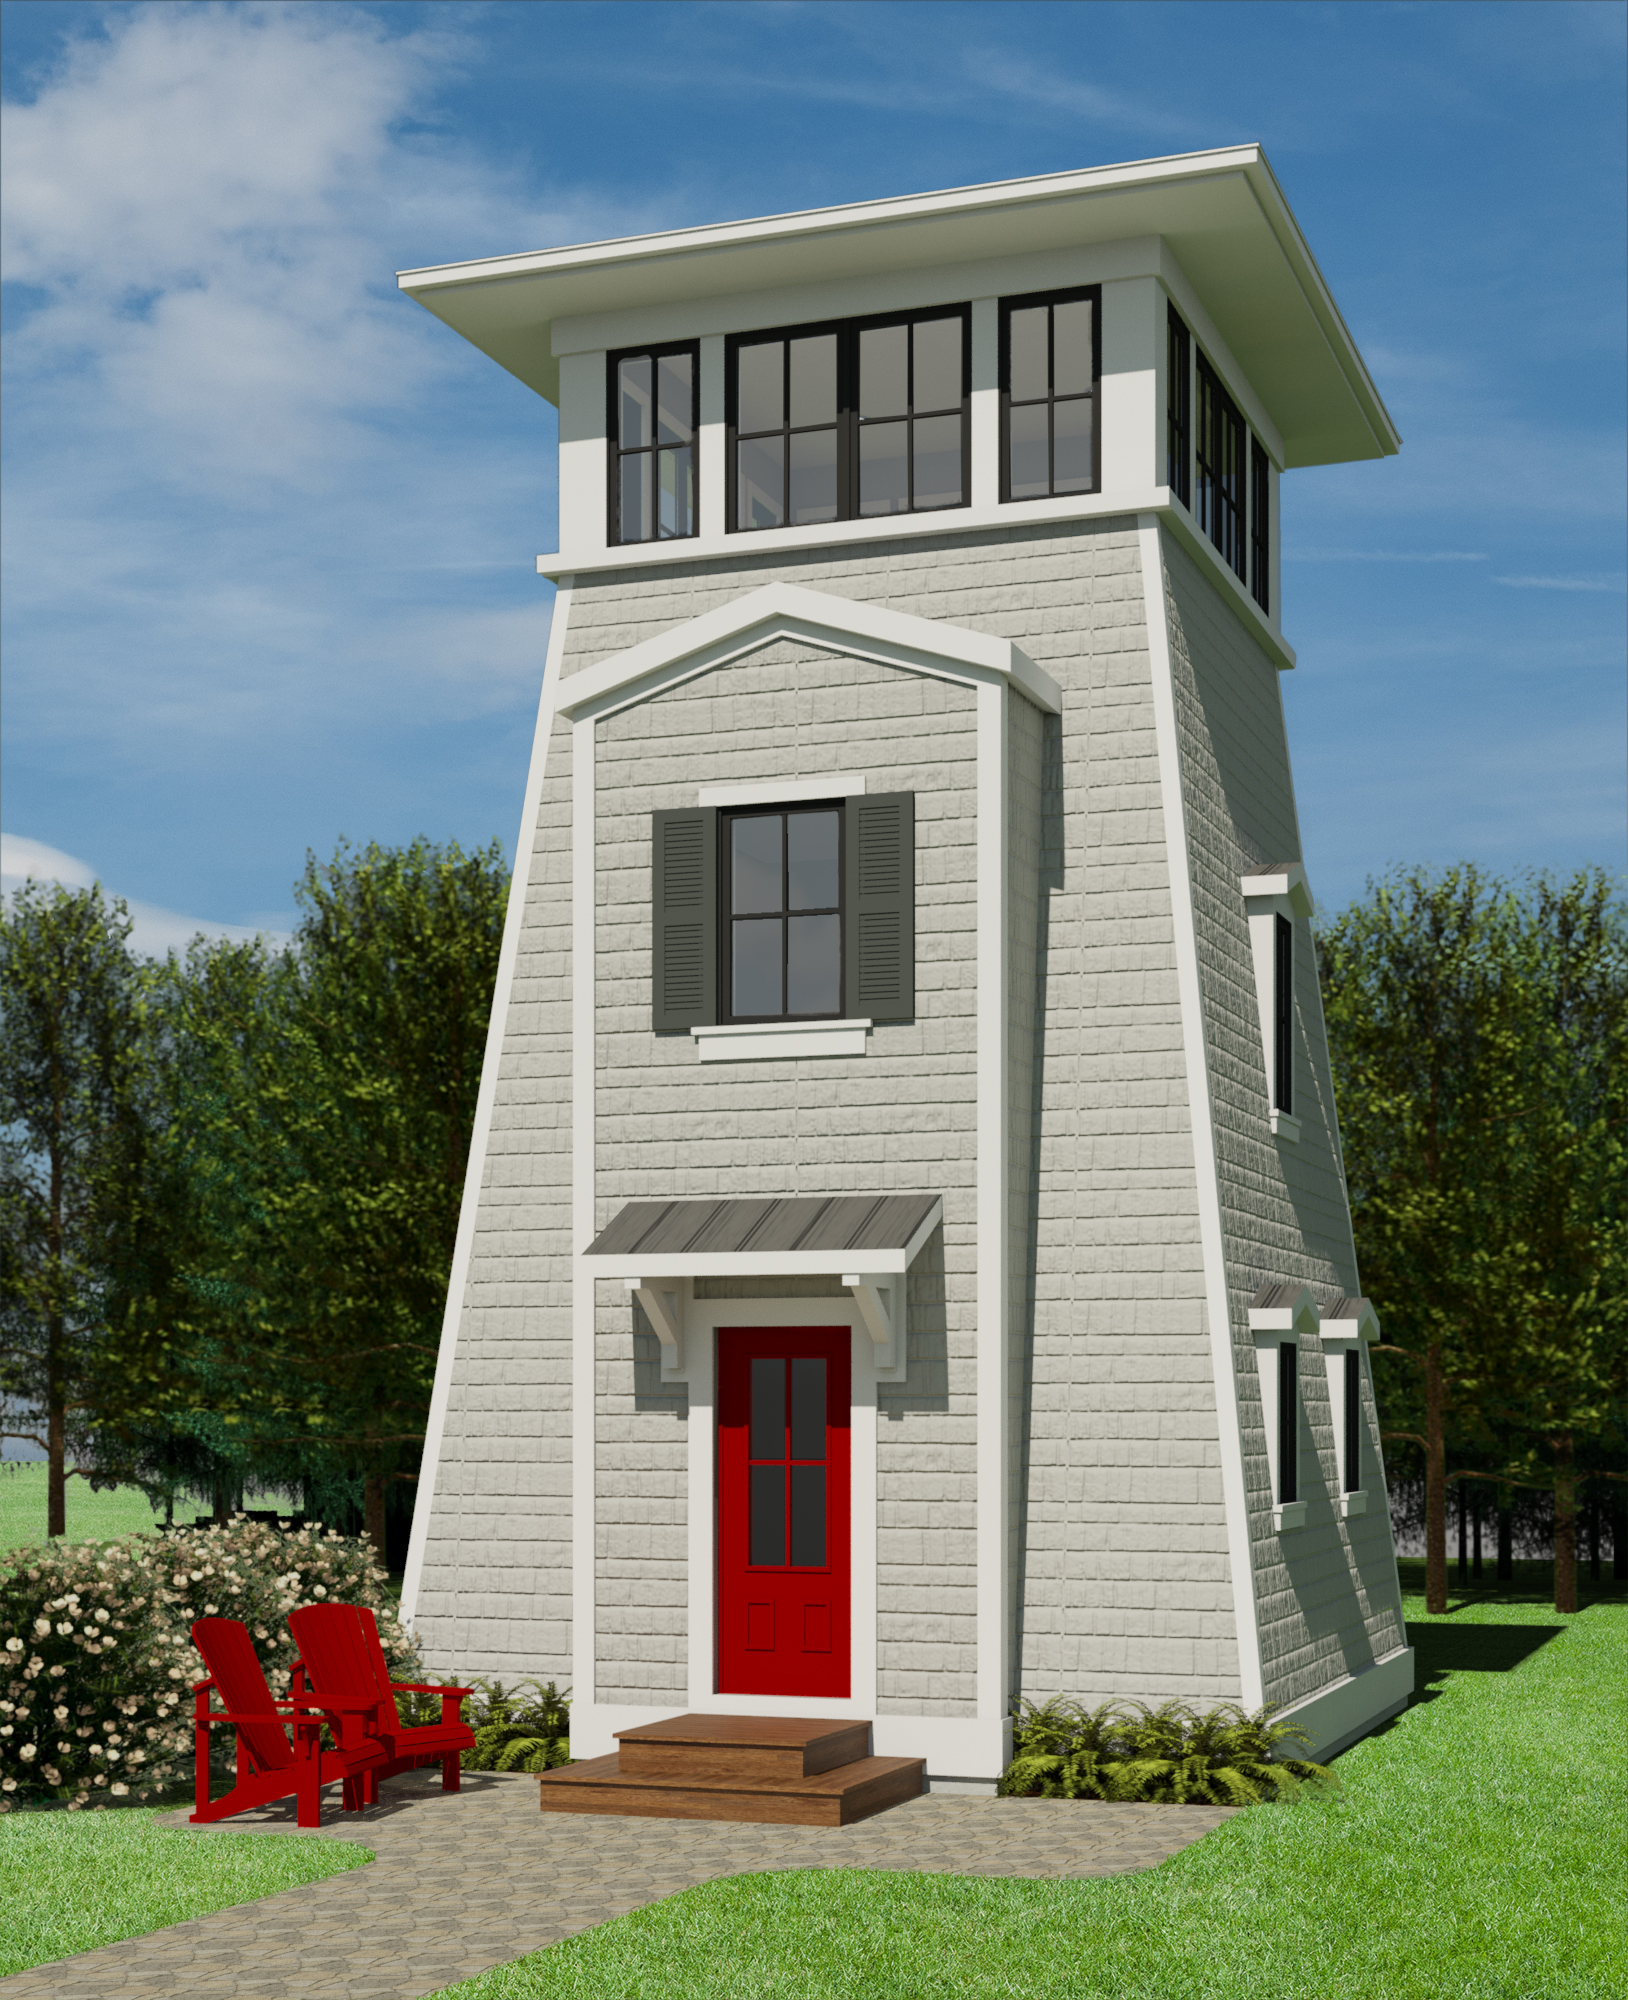 Nova scotia 657 for Micro home designs